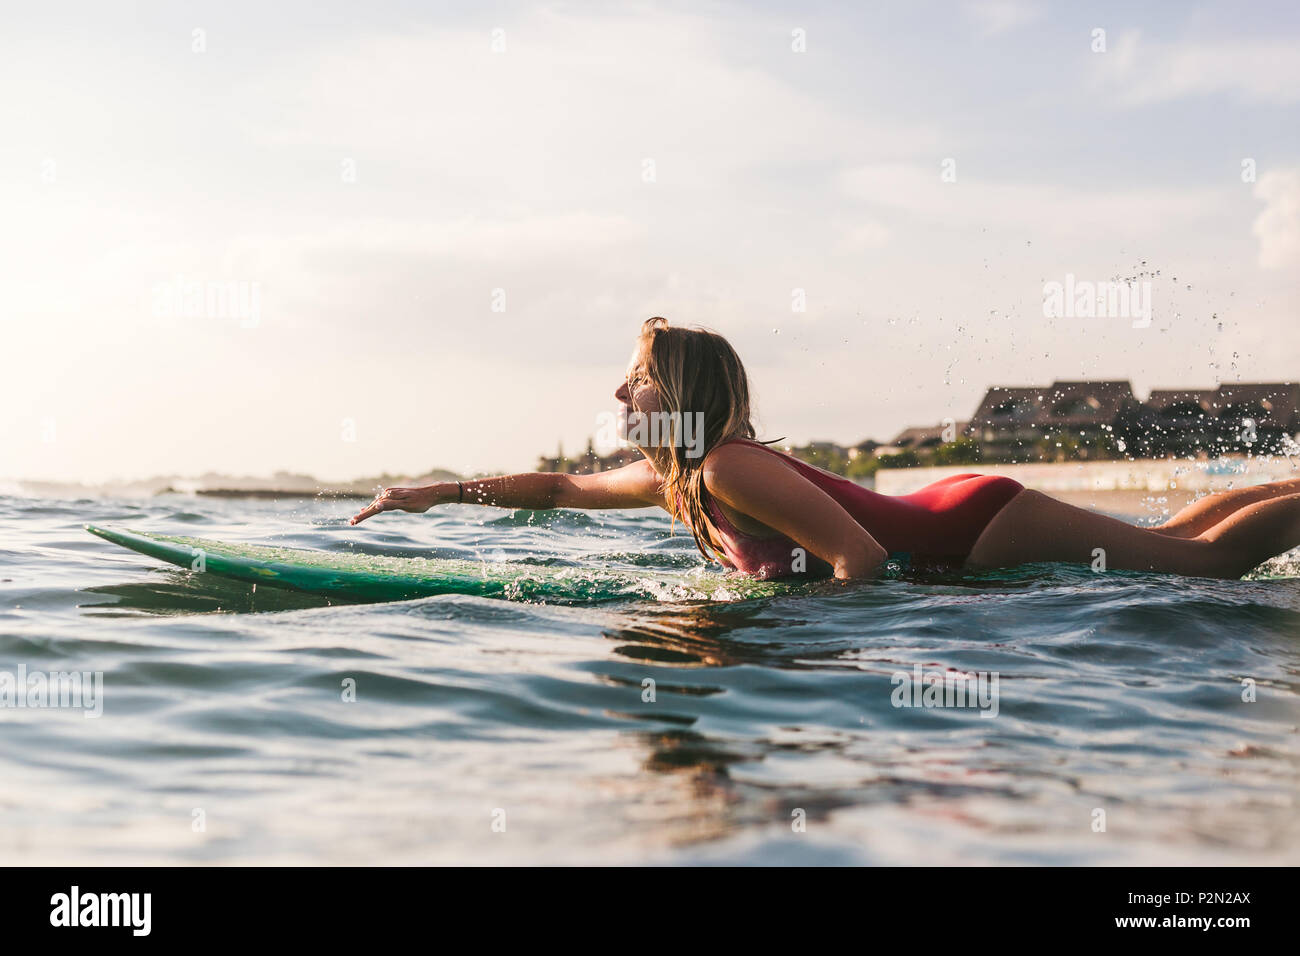 side view of young woman in swimming suit surfing alone in ocean - Stock Image